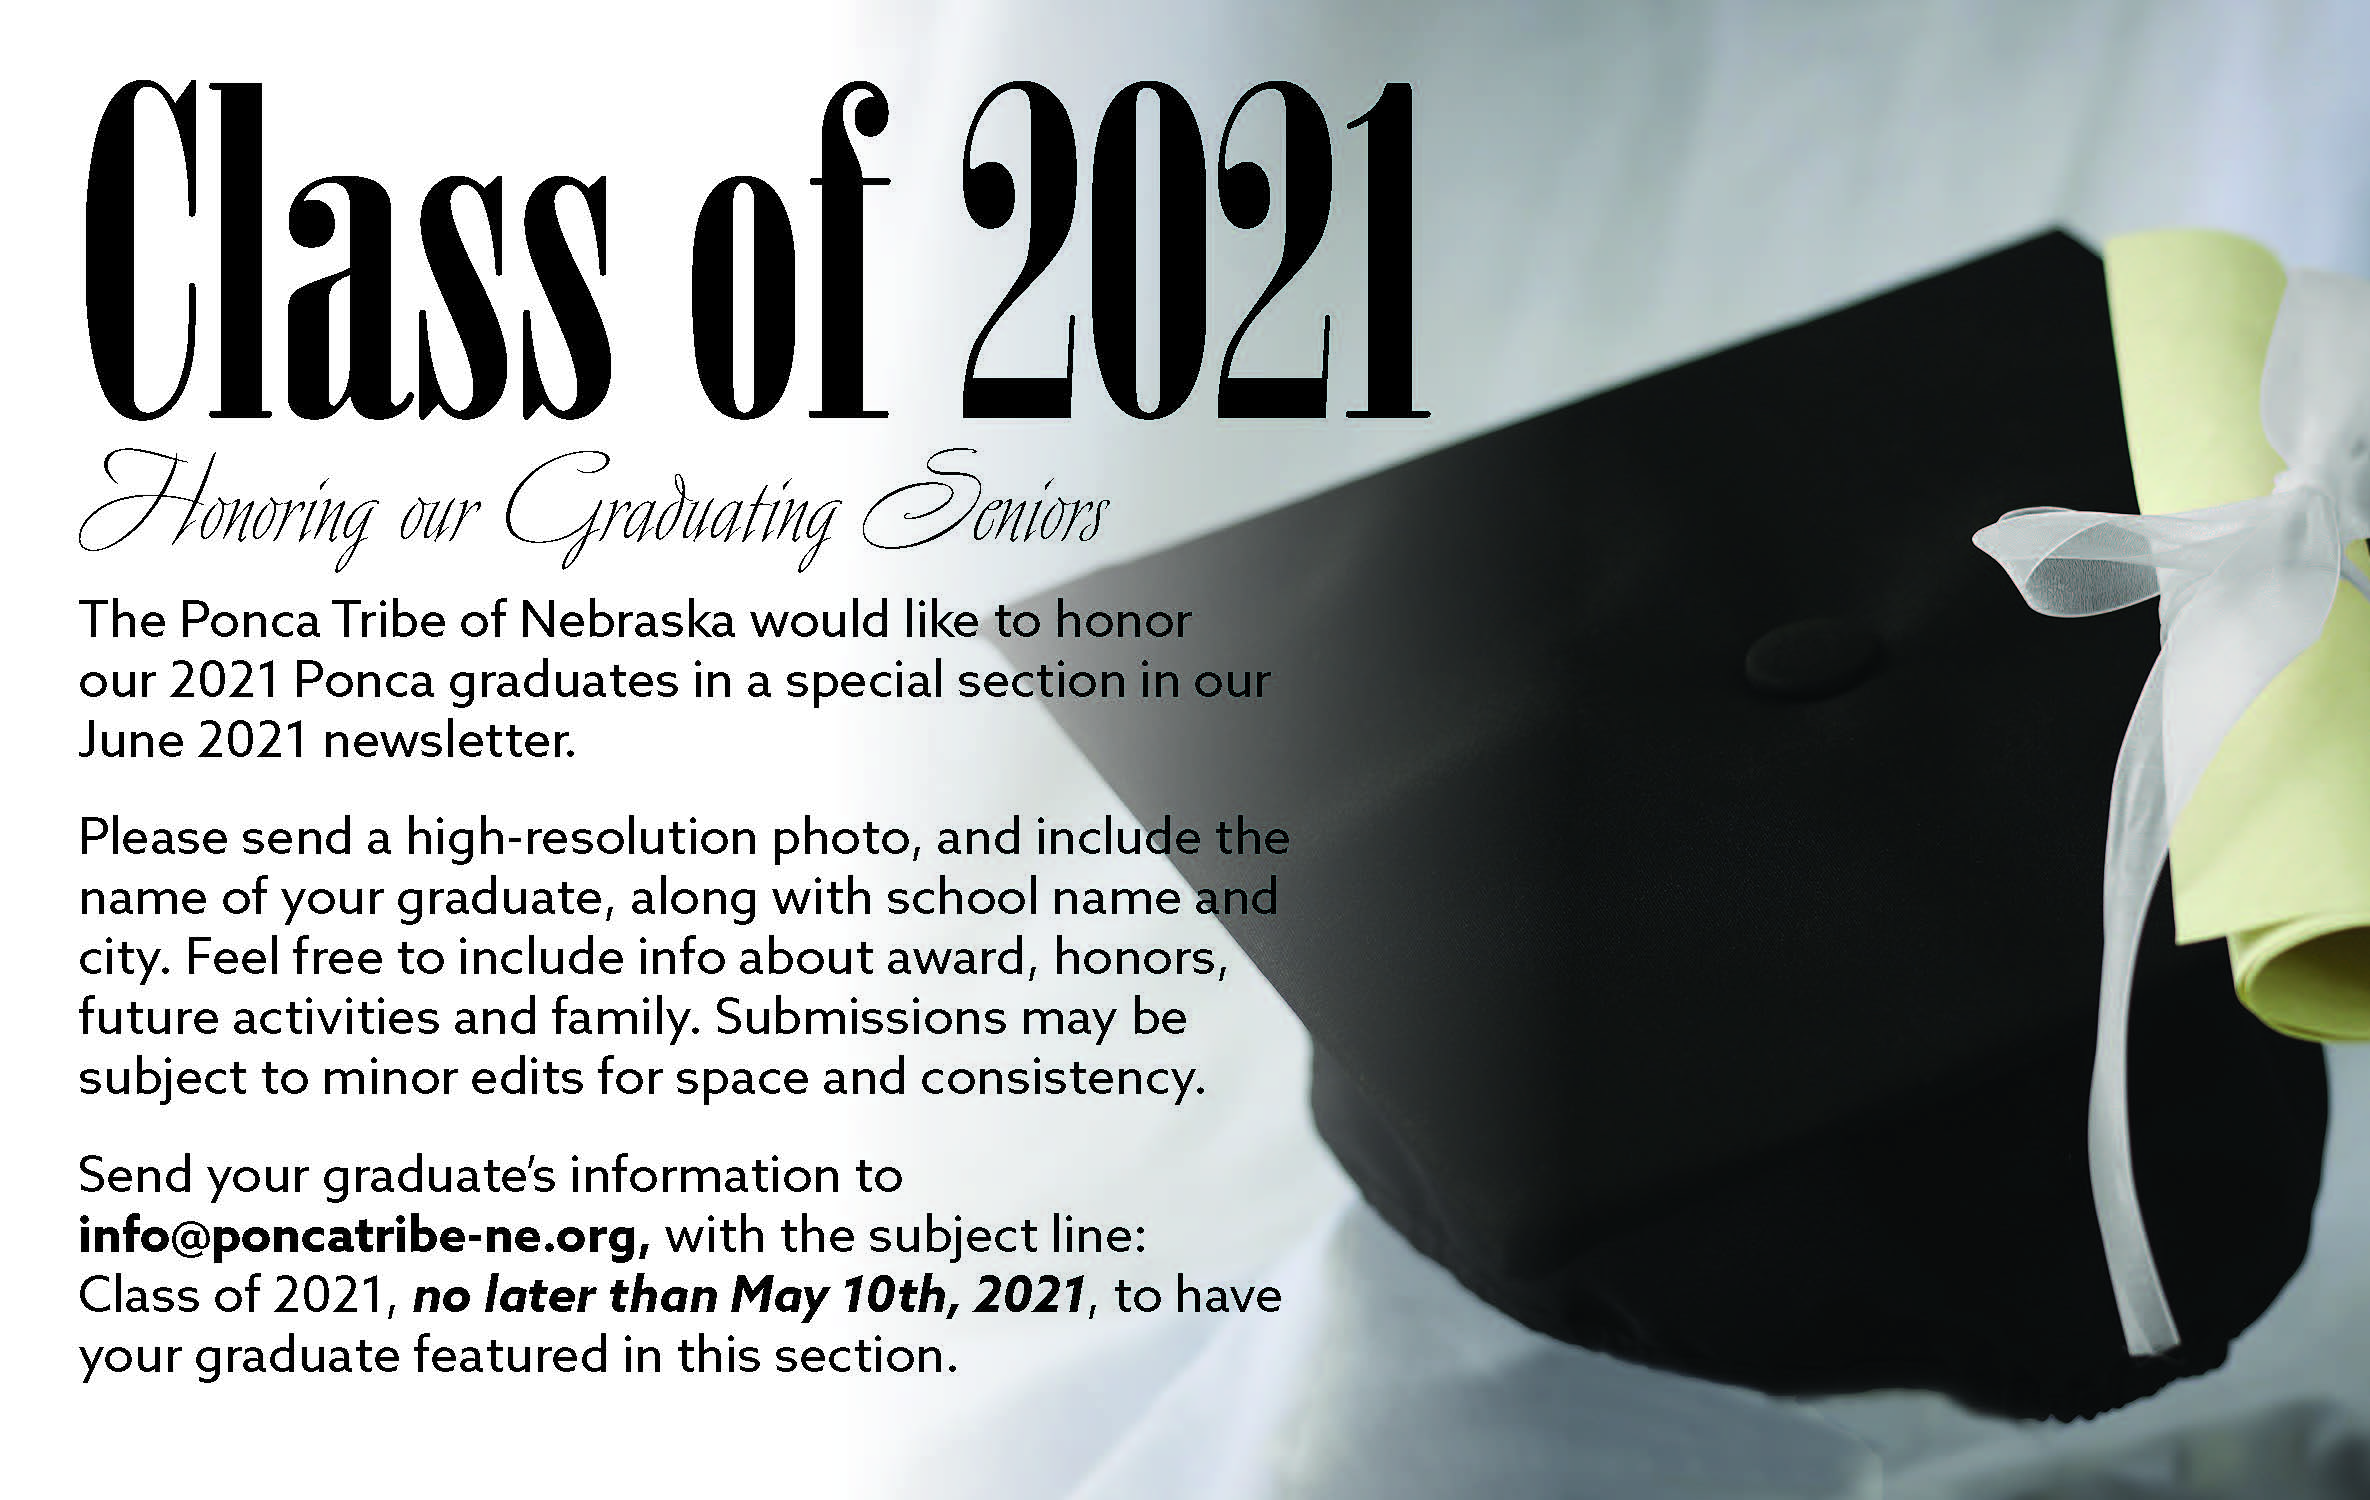 Deadline to Submit Graduate Info is May 10